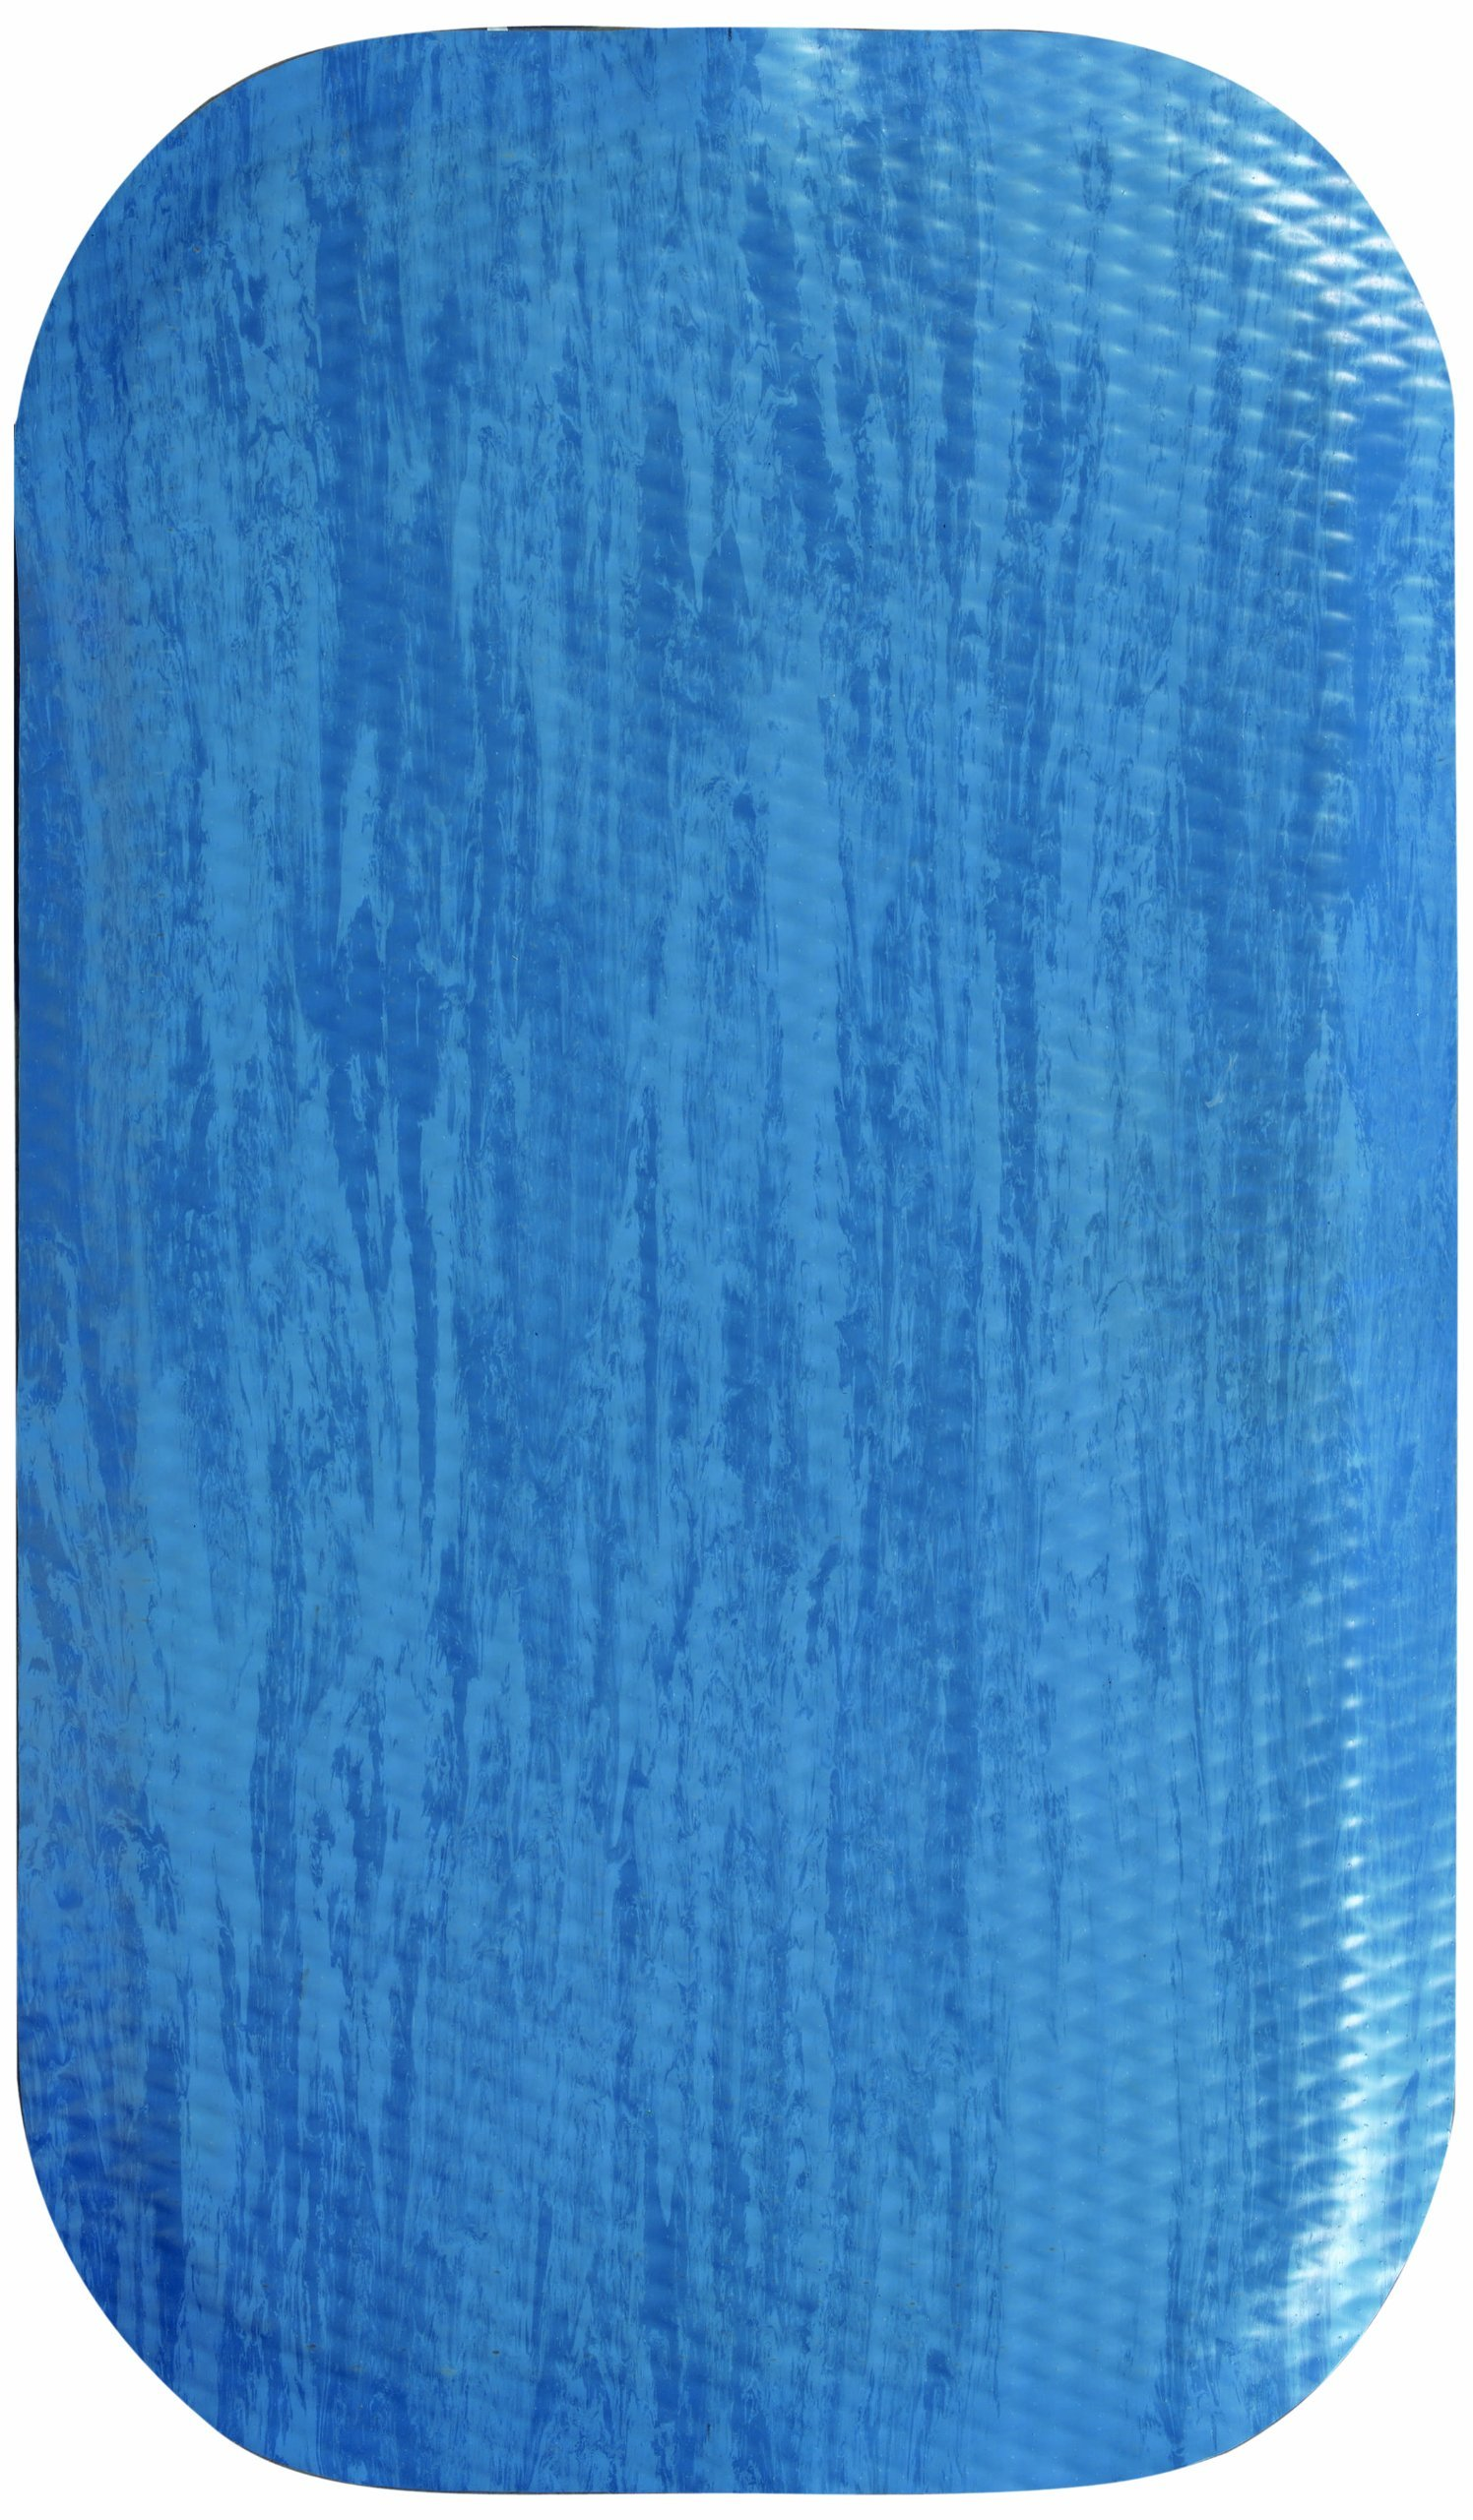 M+A Matting 448 Blue Merle Nitrile Rubber Hog Heaven Anti-Fatigue Mat, Marble Top, 3' Length x 2' Width x 5/8'' Thick, For Indoor